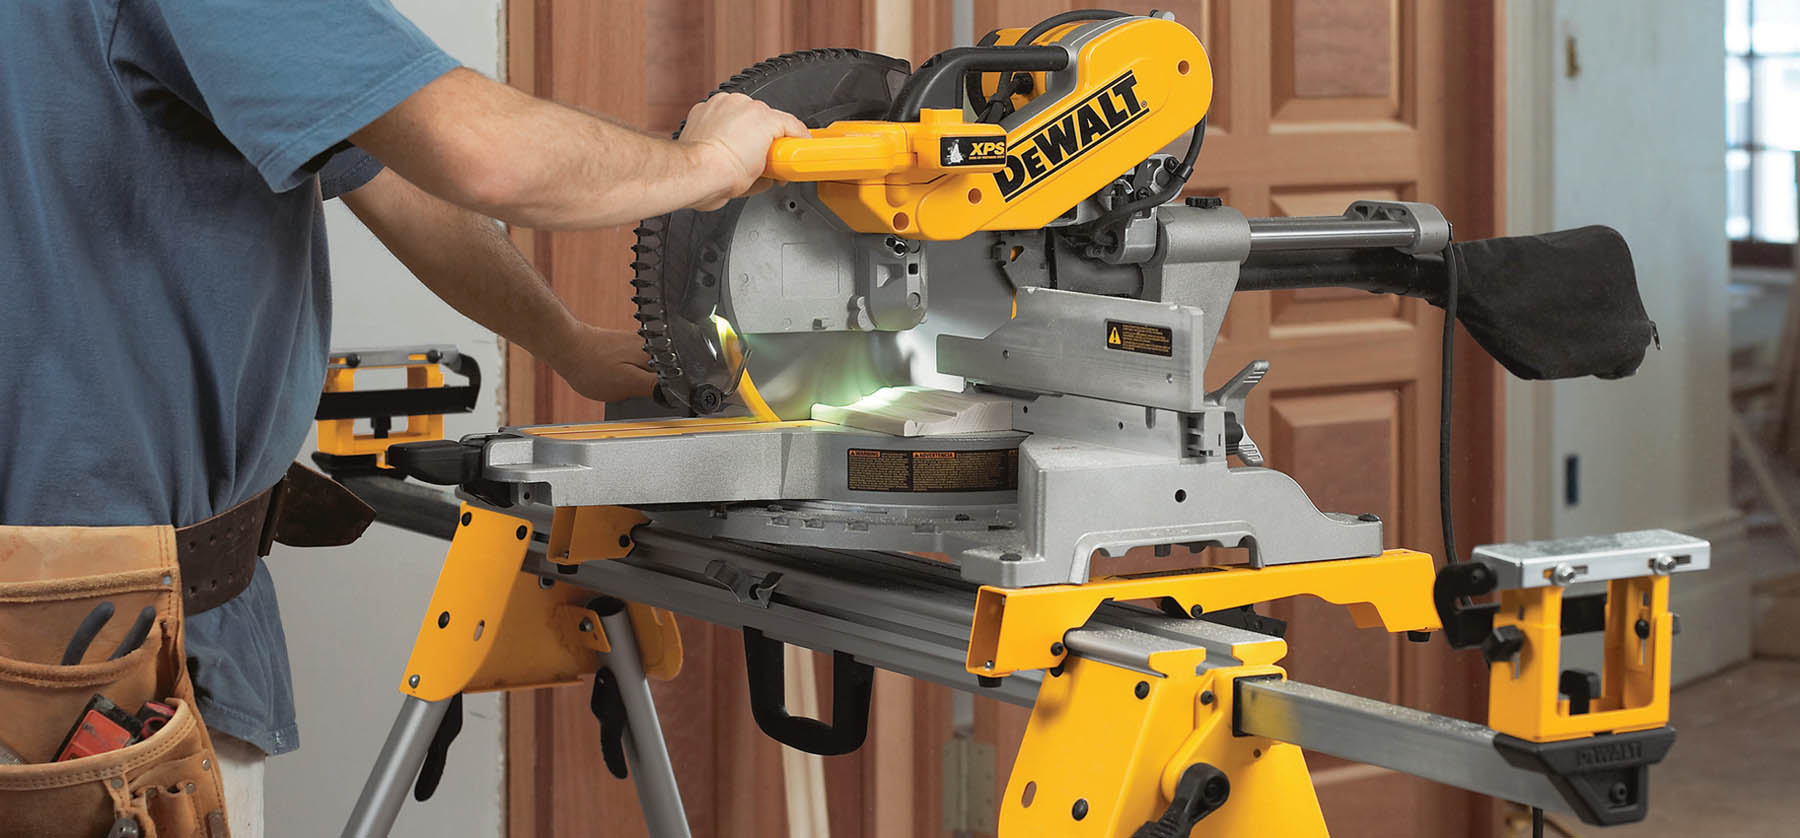 A miter saw being used essential woodworking tools for beginners basic power tools